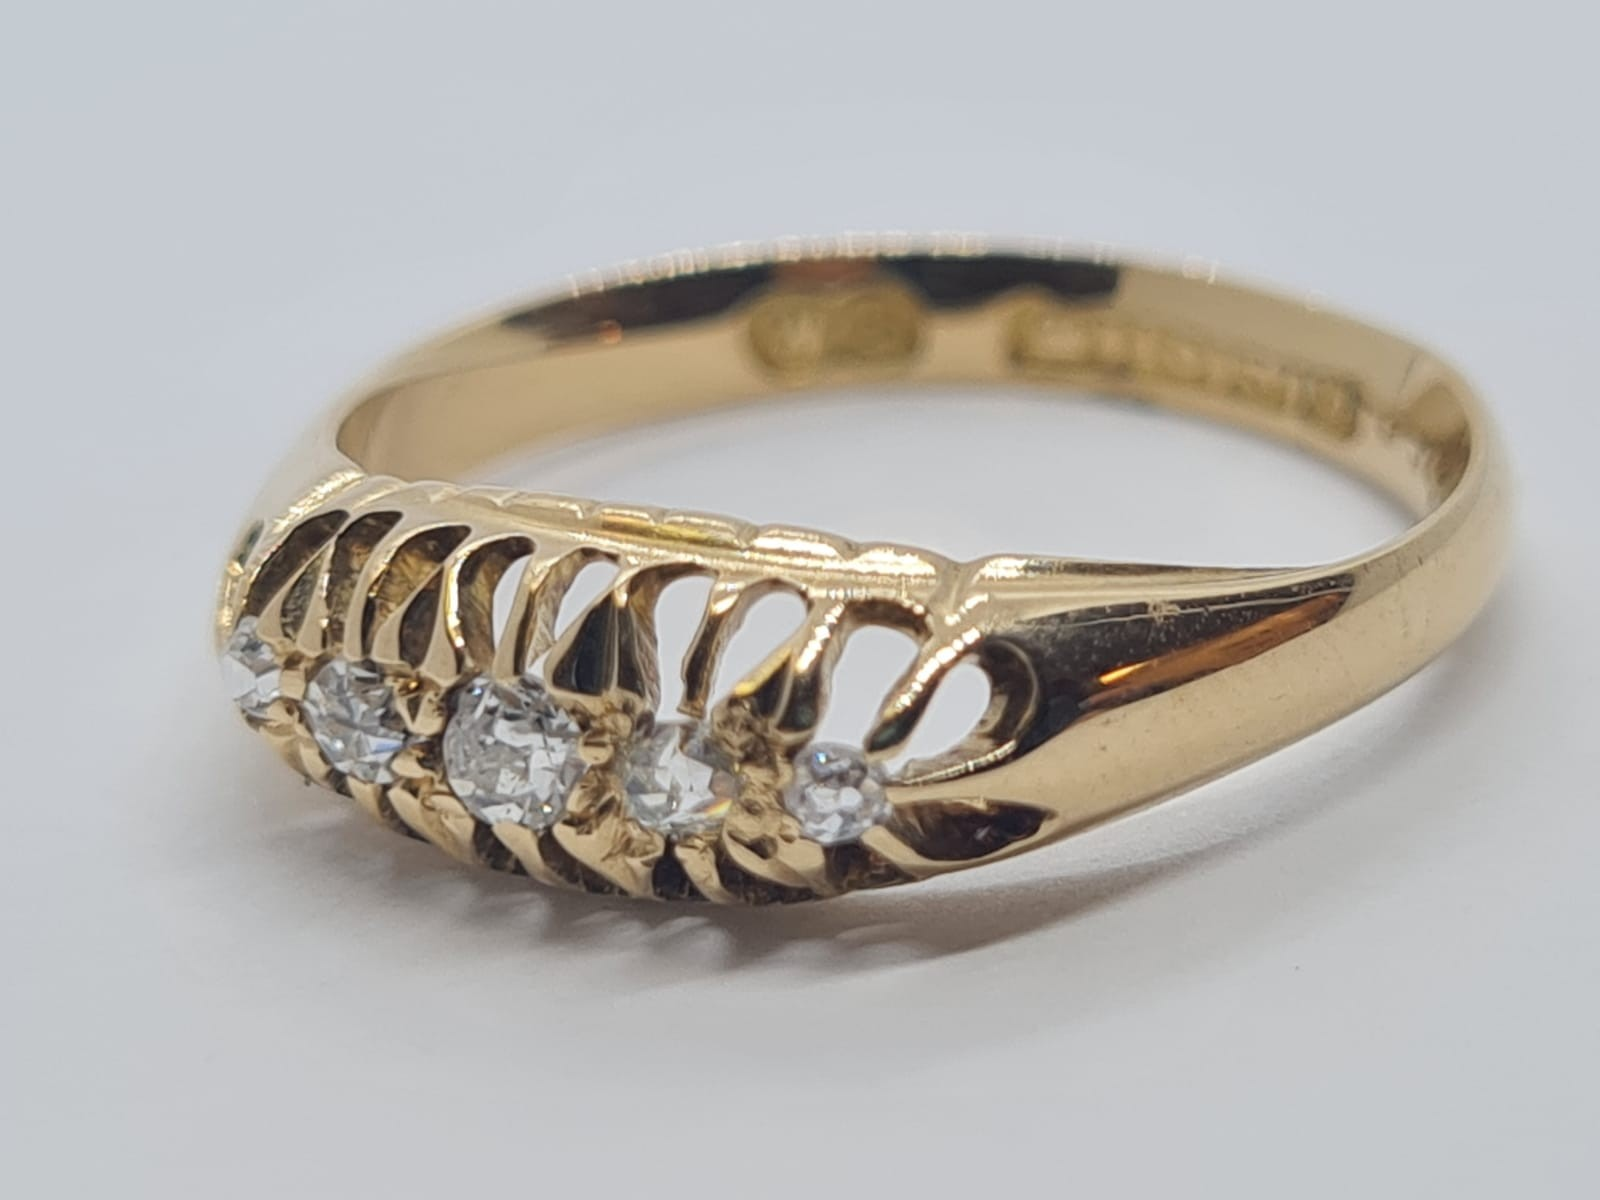 18k Yellow gold vintage DIAMOND 5 STONE SET RING, APPROX 0.15CT DIAMONDS, WEIGHT 2.9g SIZE N - Image 2 of 4